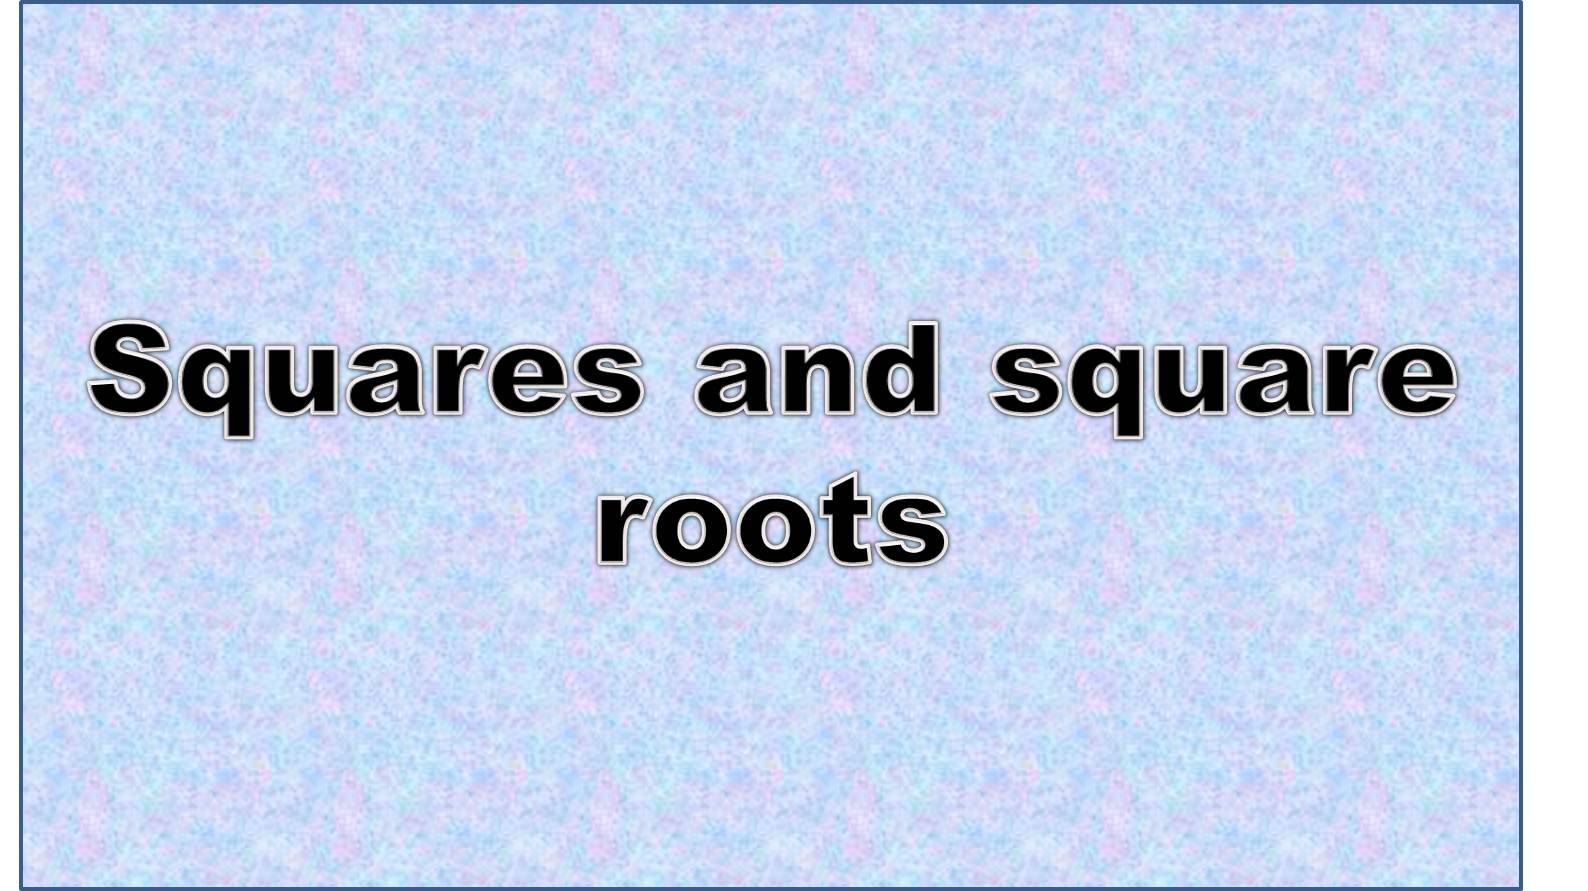 http://study.aisectonline.com/images/Intro to square roots.jpg